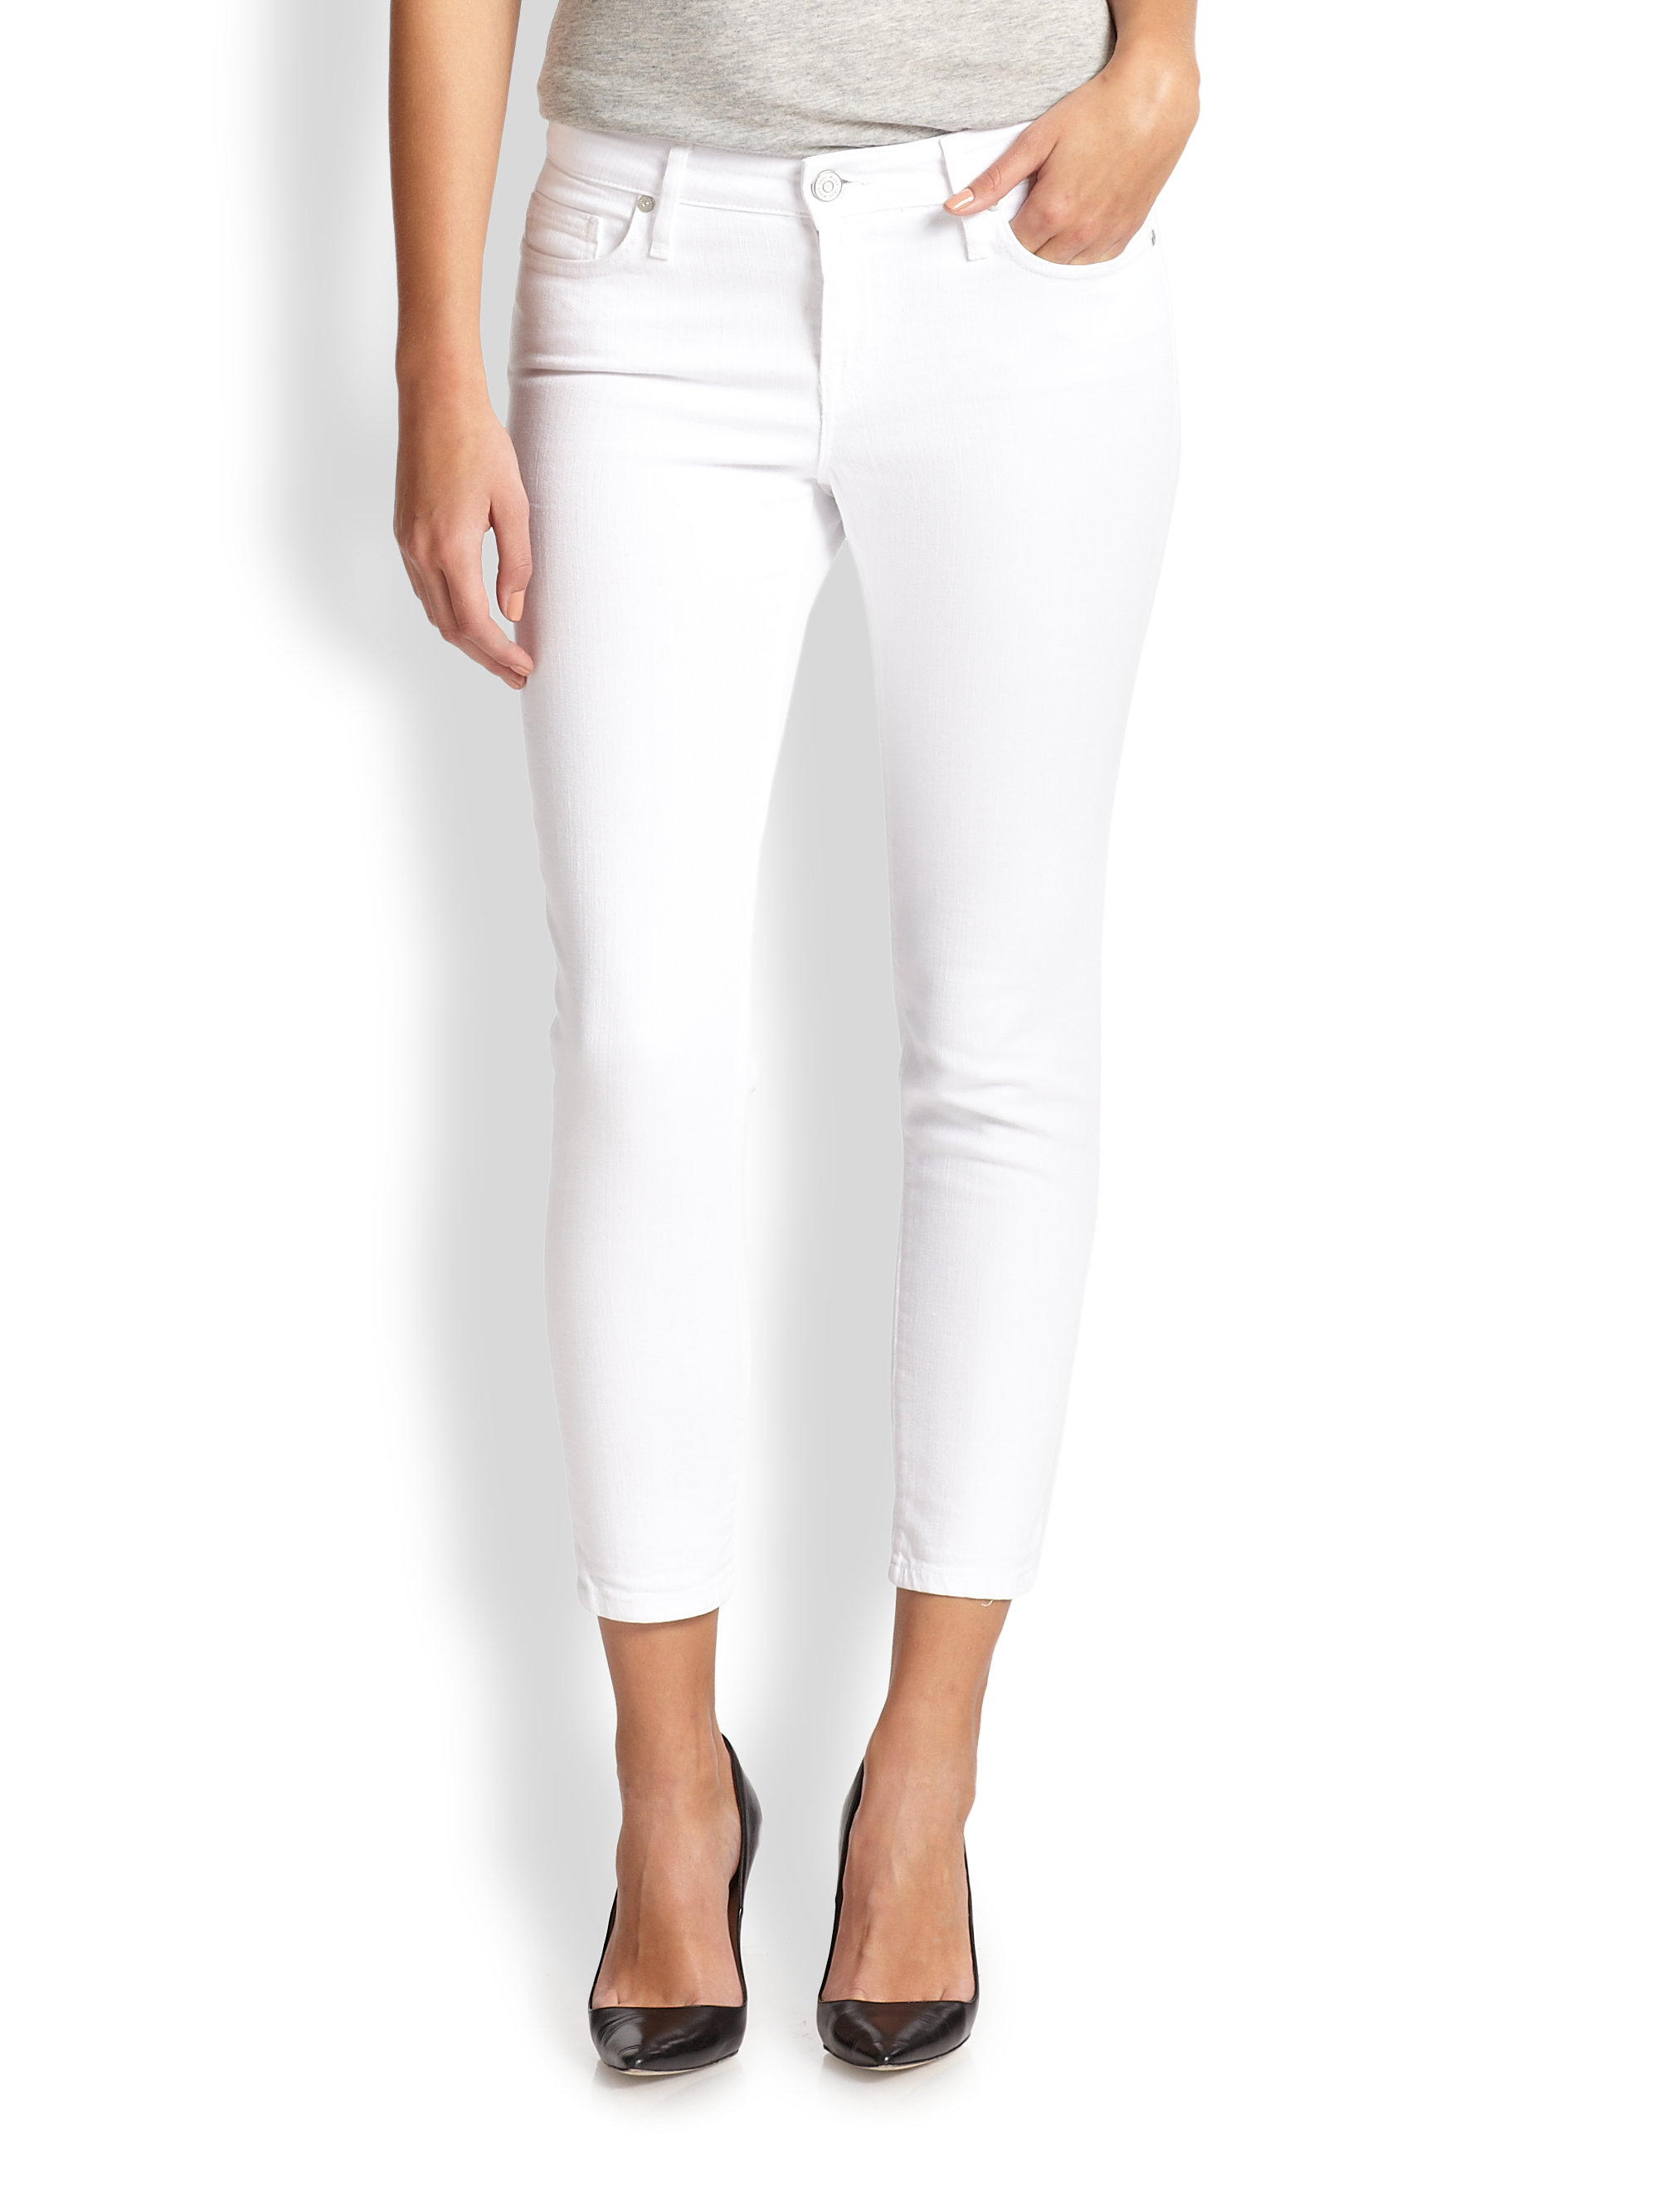 Joie Skinny Cropped Jeans in White | Lyst